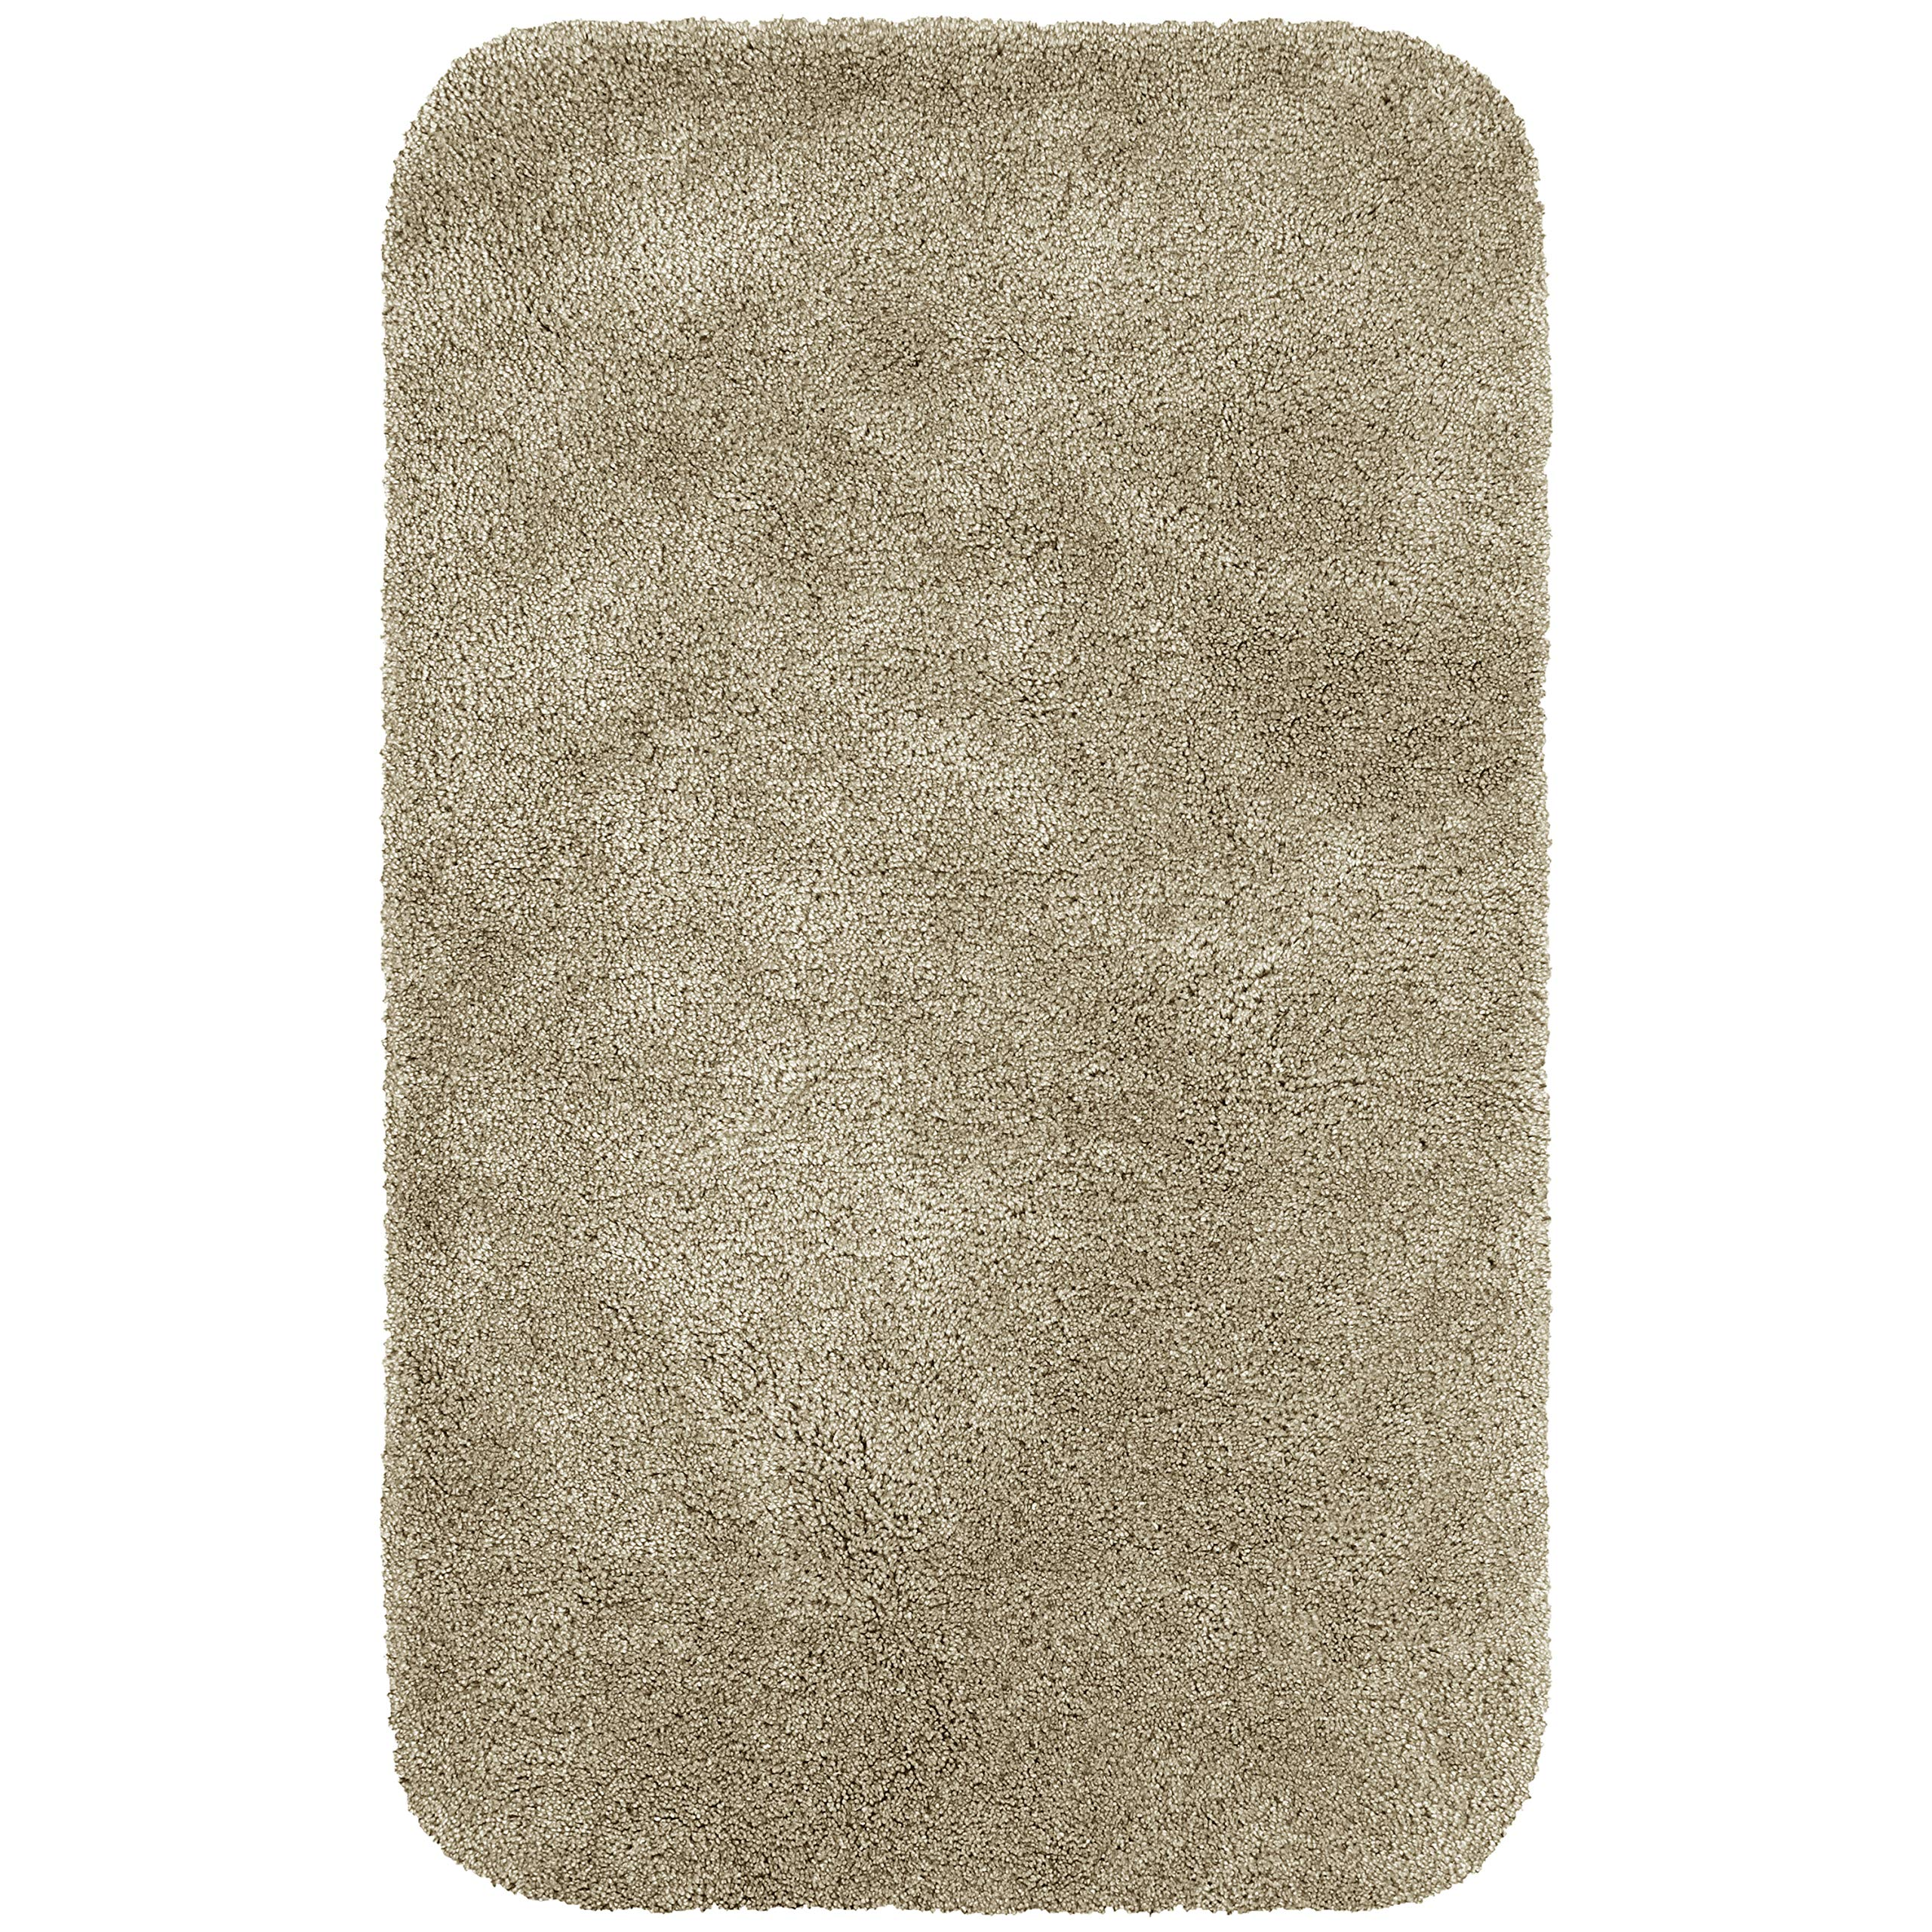 Maples Rugs Bathroom Rugs - Colorsoft 23.5'' x 39'' Non Slip Washable Bath Mat [Made in USA} Soft & Quick Dry for Vanity and Shower Clay Beige